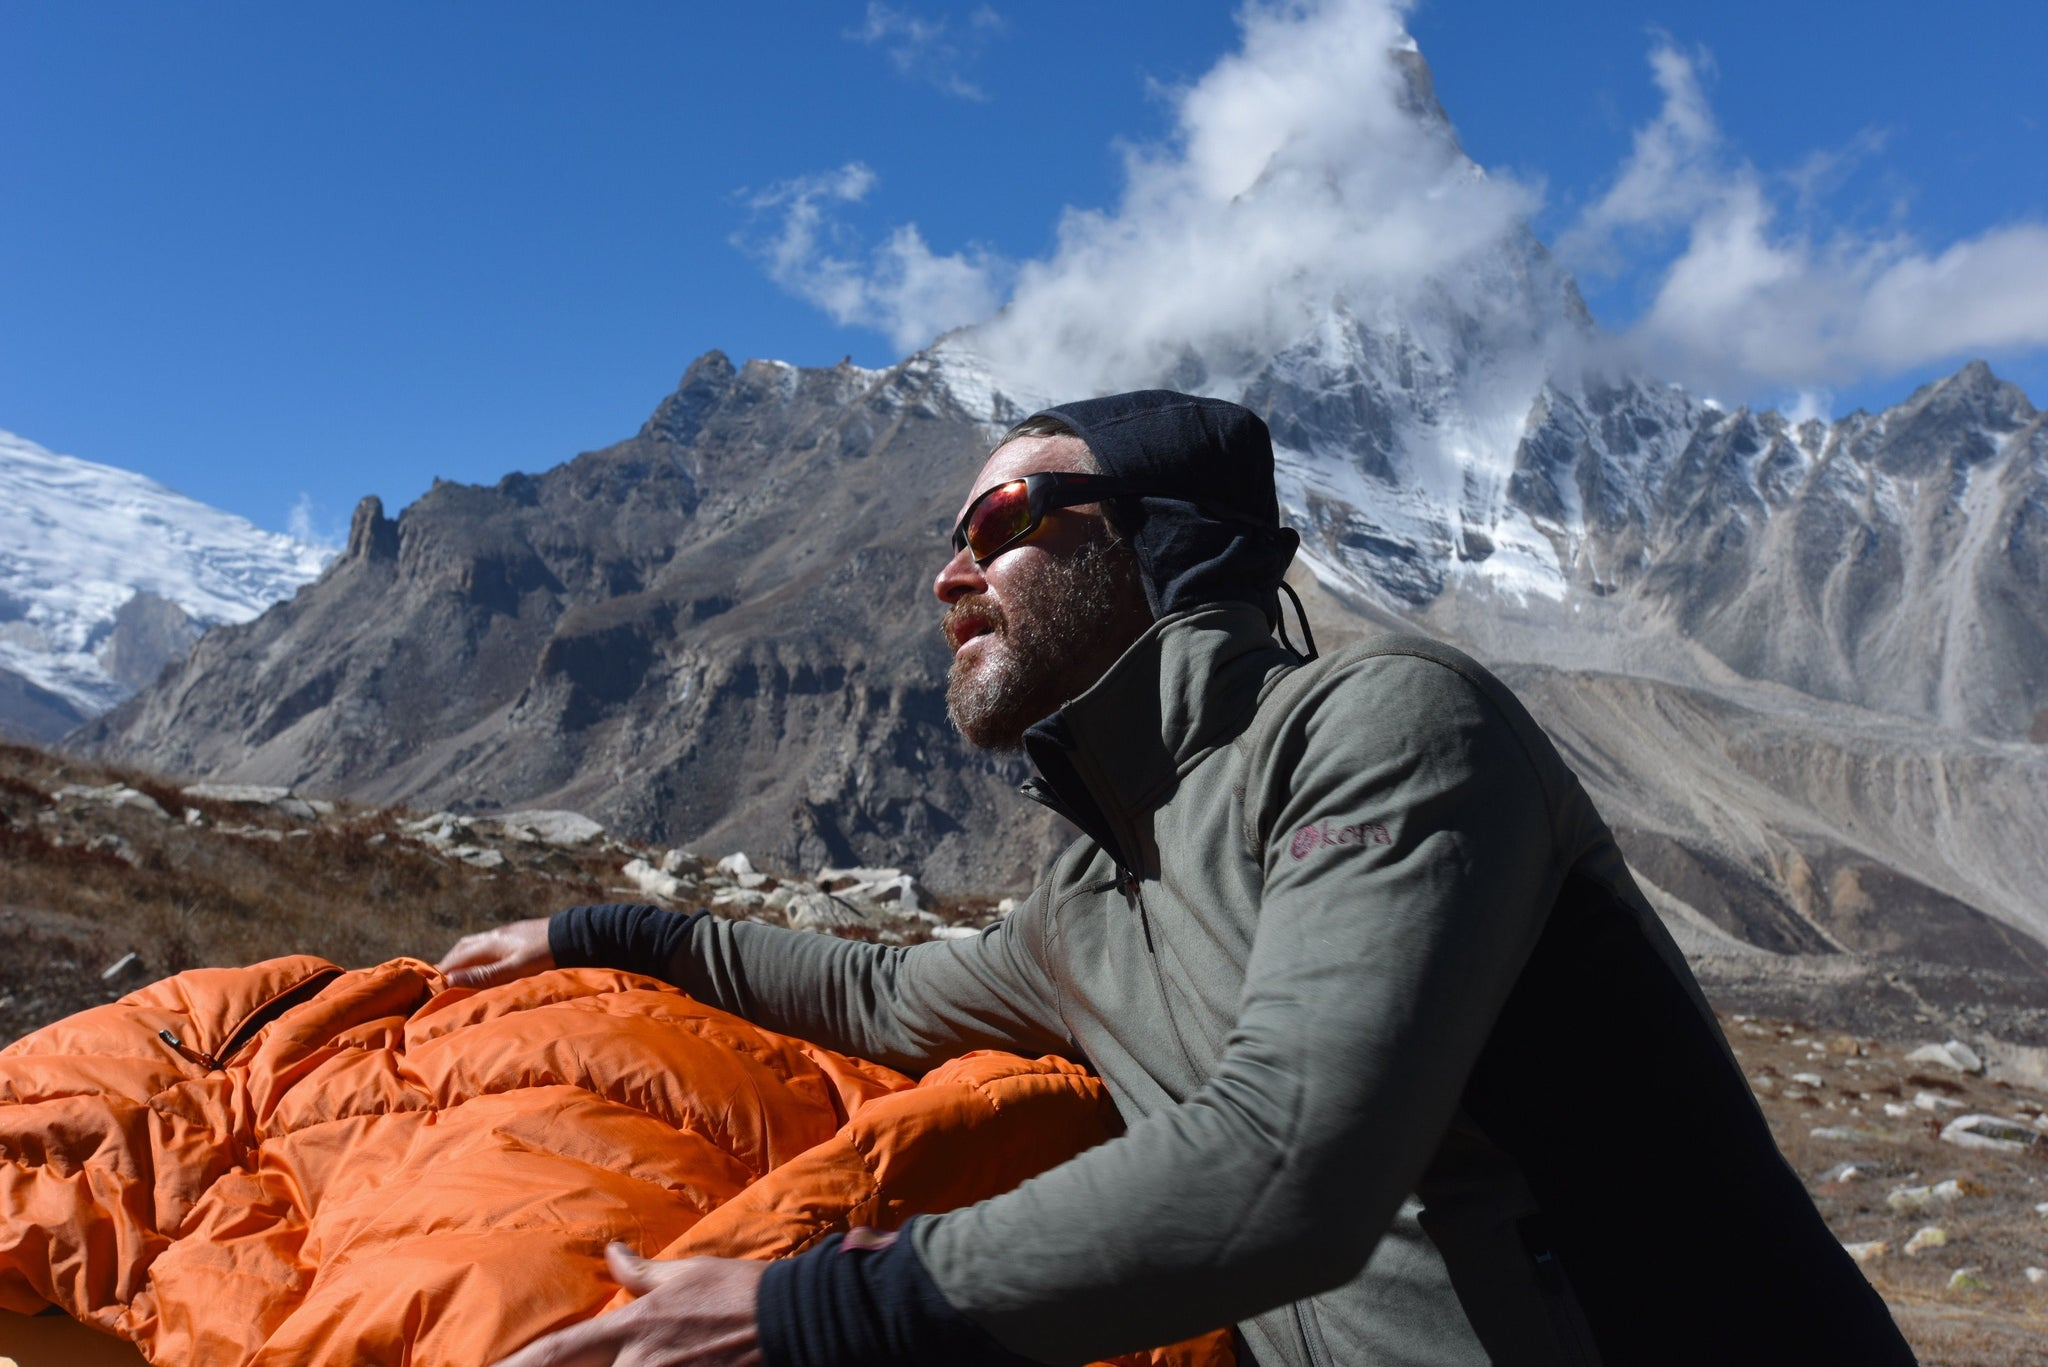 Jeff Fuchs - Himalayan Explorer and Author #findyouradventure